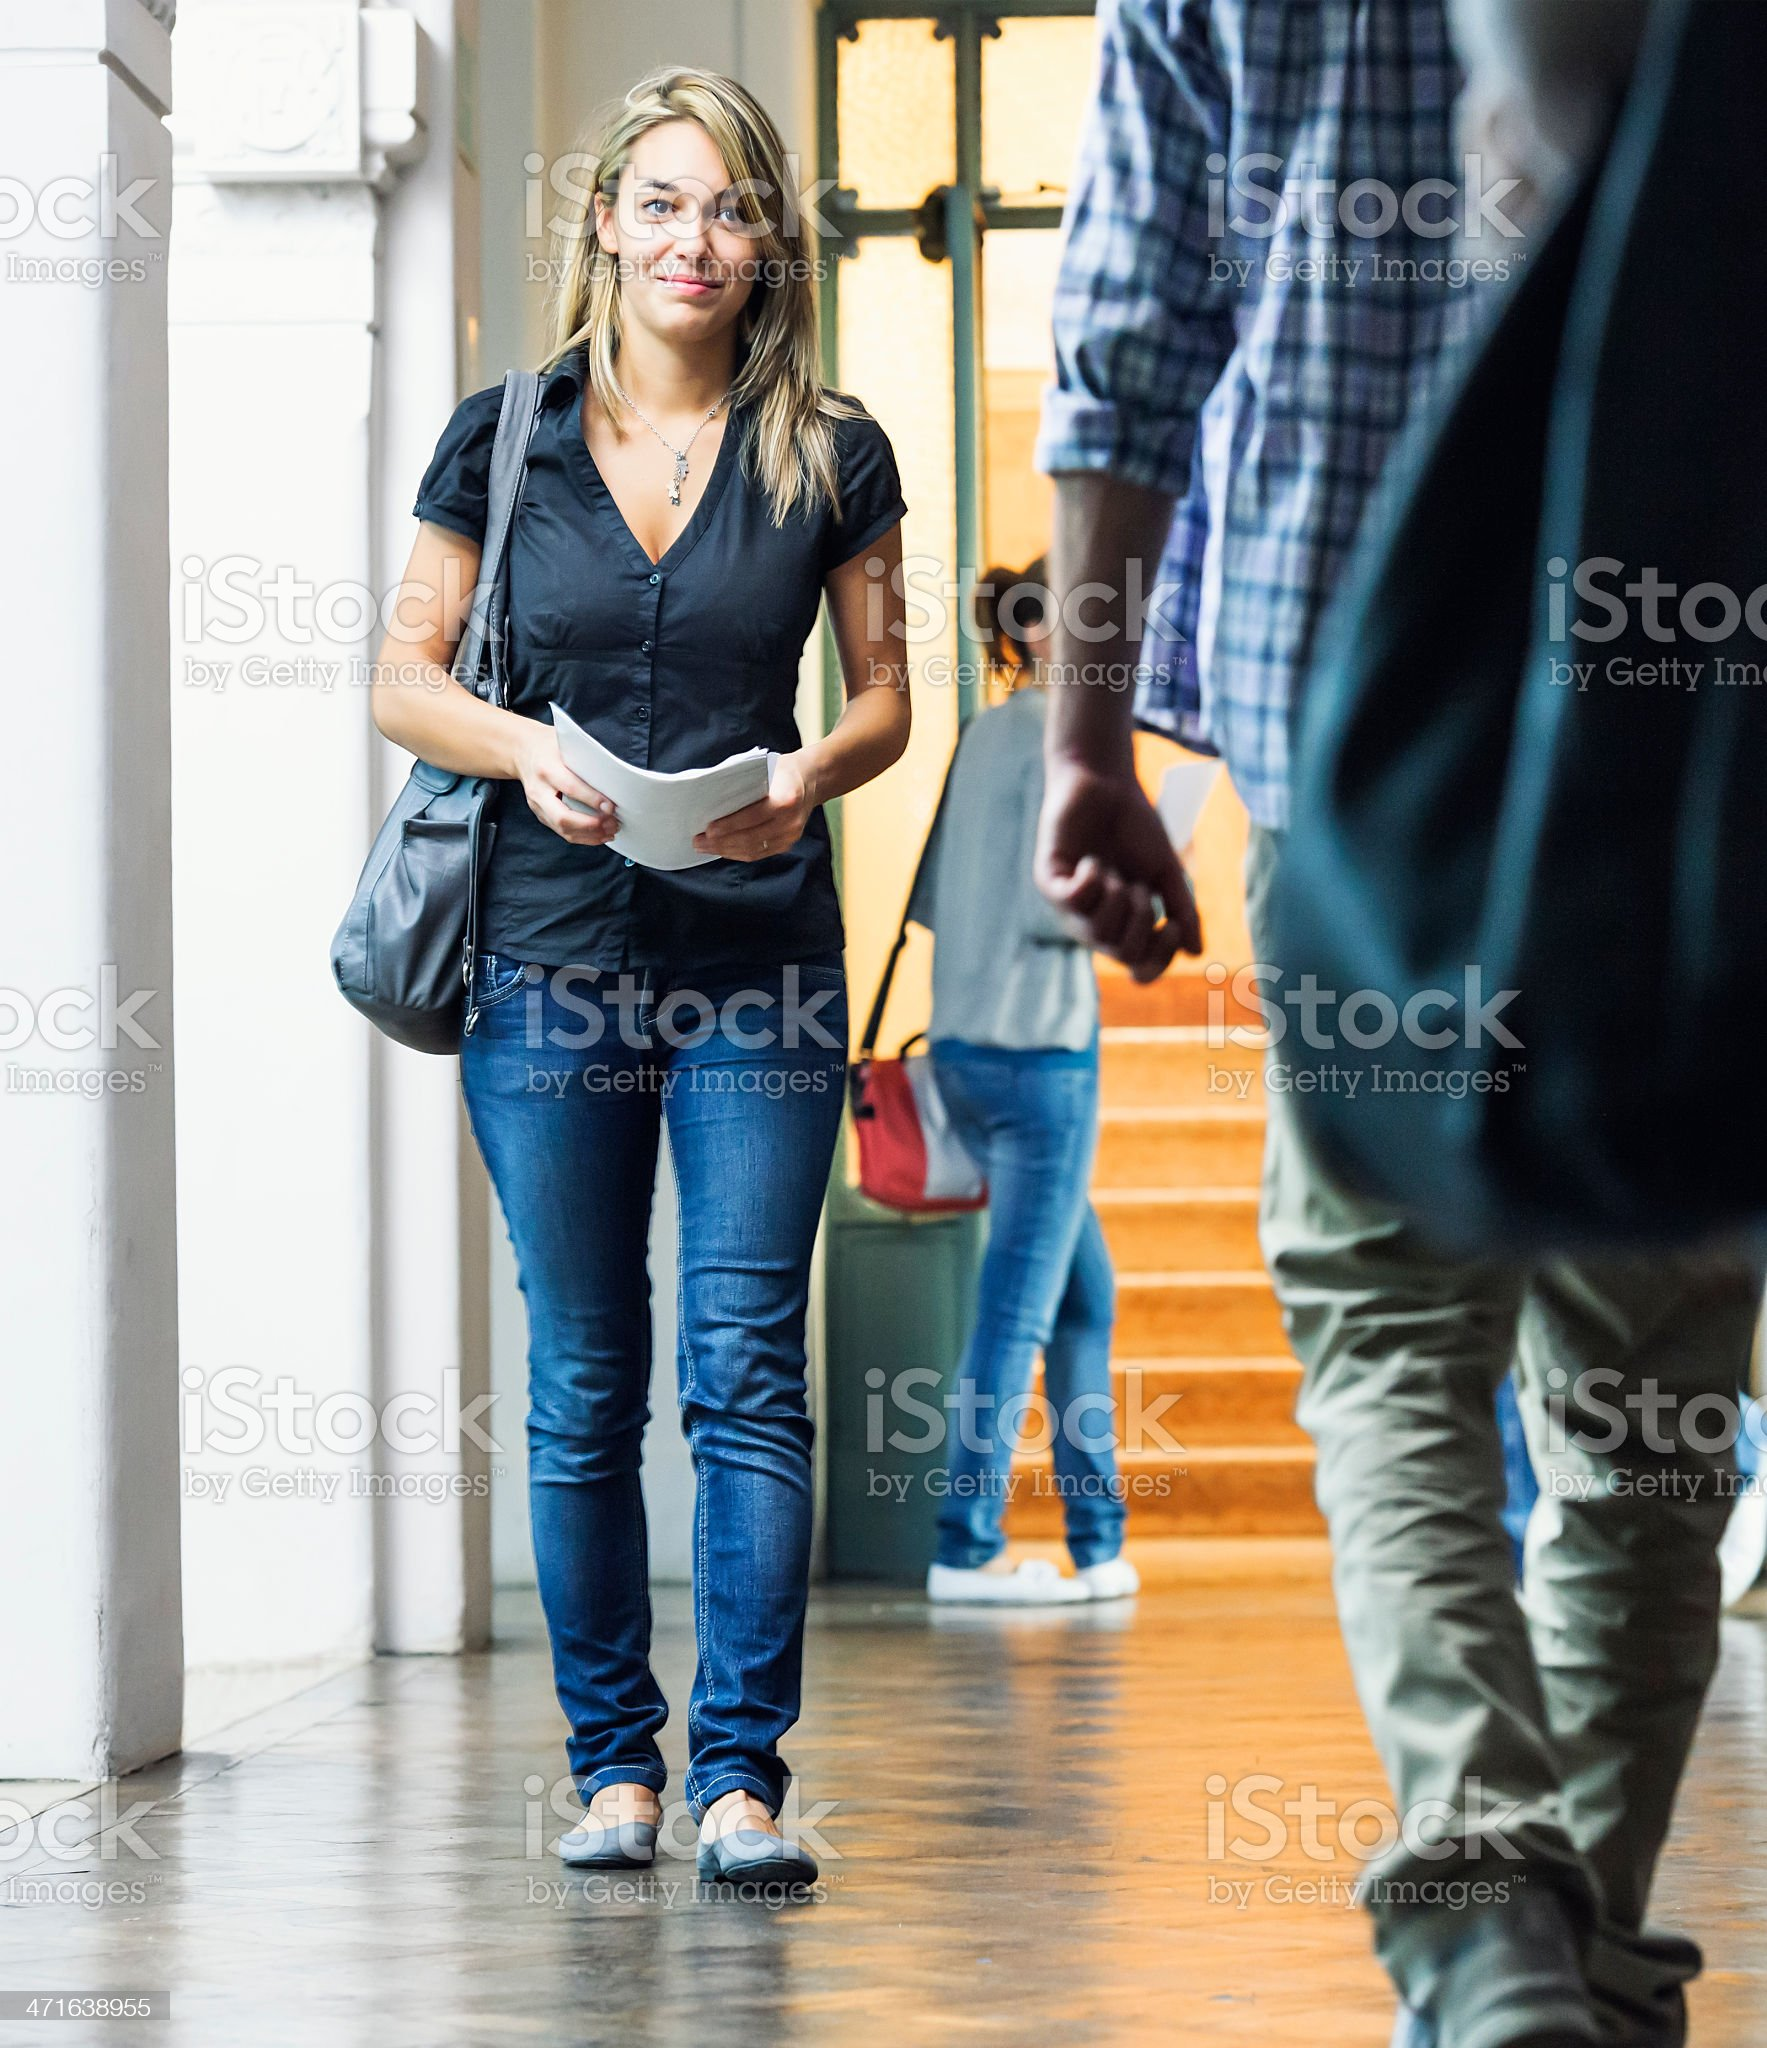 College Students Passing Between Classes in a Corridor royalty-free stock photo